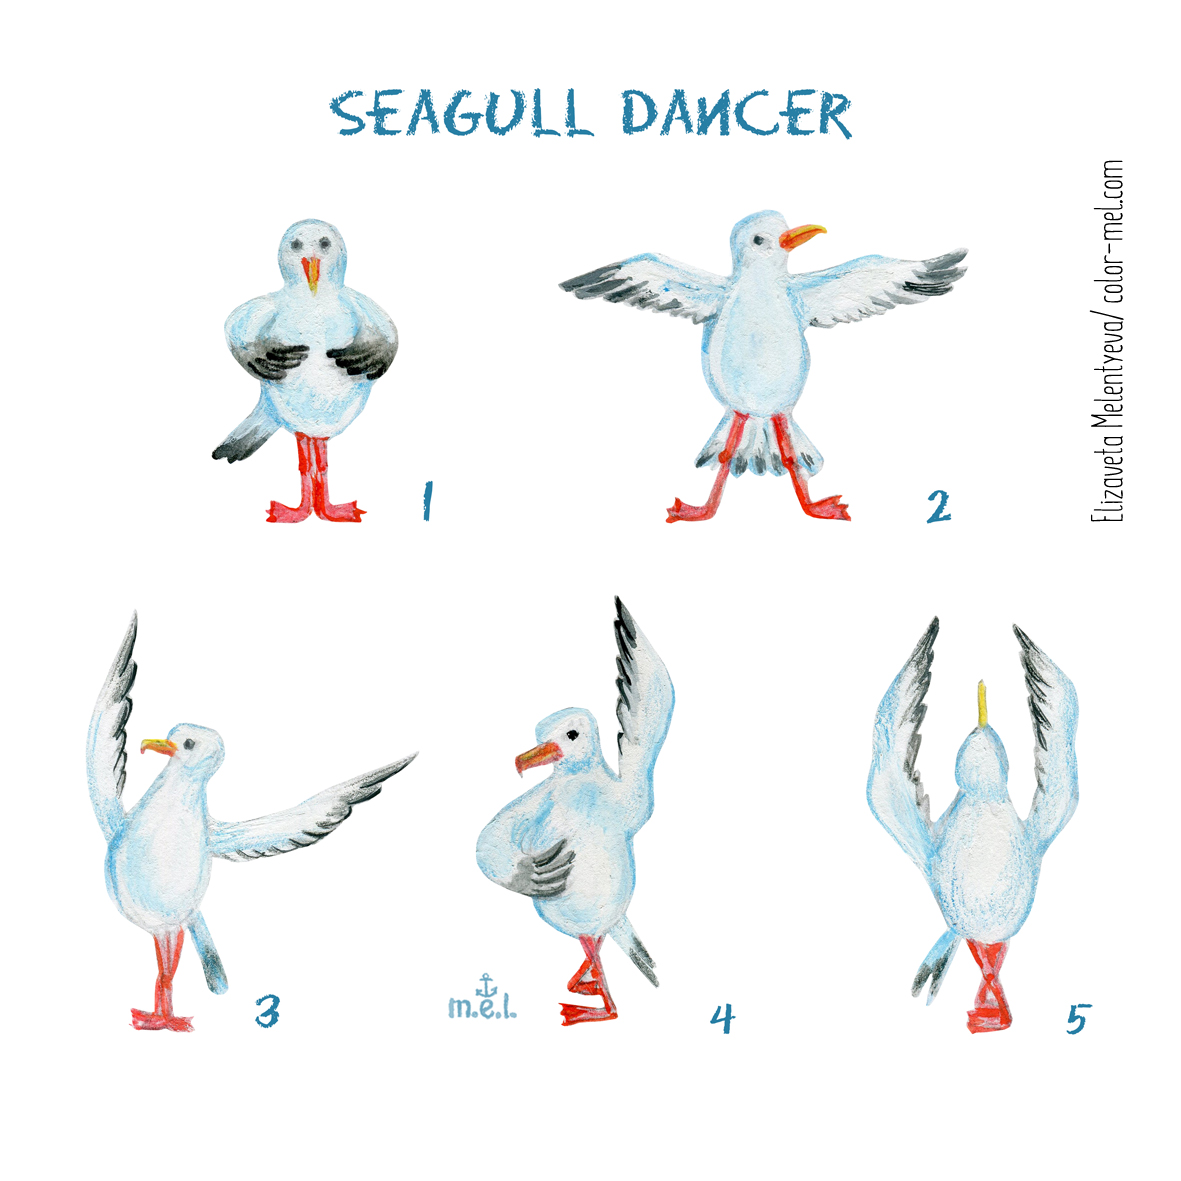 Seagull dancer